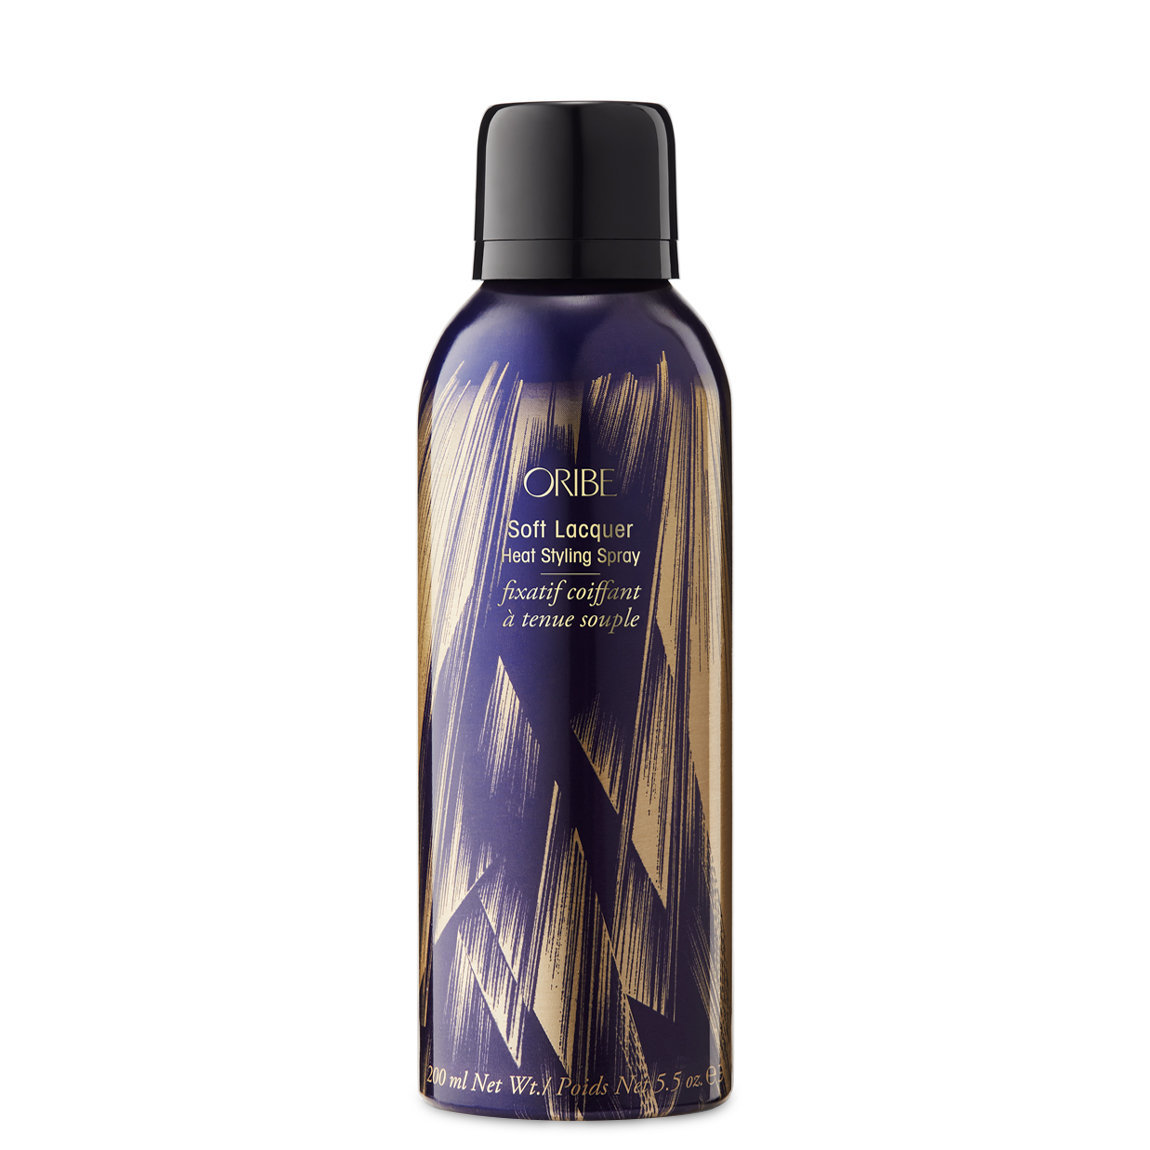 Oribe Soft Lacquer Heat Styling Spray product swatch.